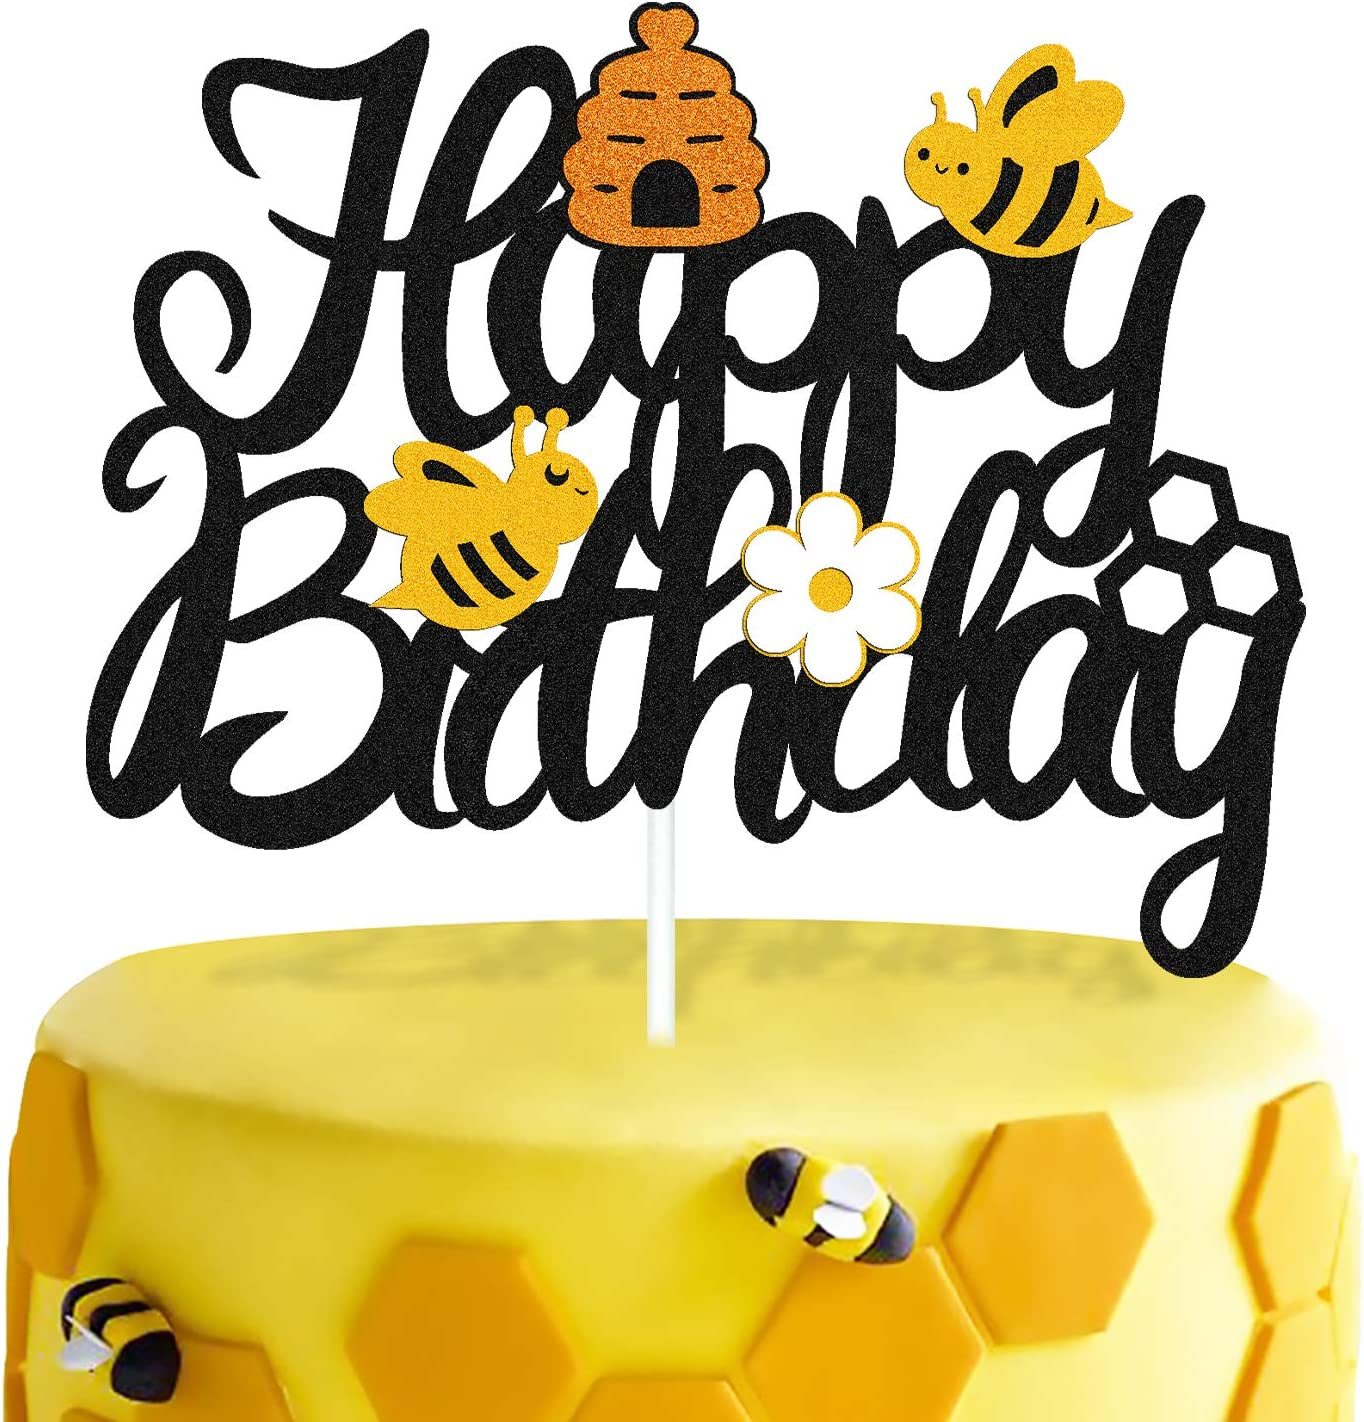 Bee Birthday Cake Topper Bumble Bee Themed Cake Decorations for Kids Girl Boy First One Year Old 2ND Happy Birthday Party Supplies Double Sided Glitter Black